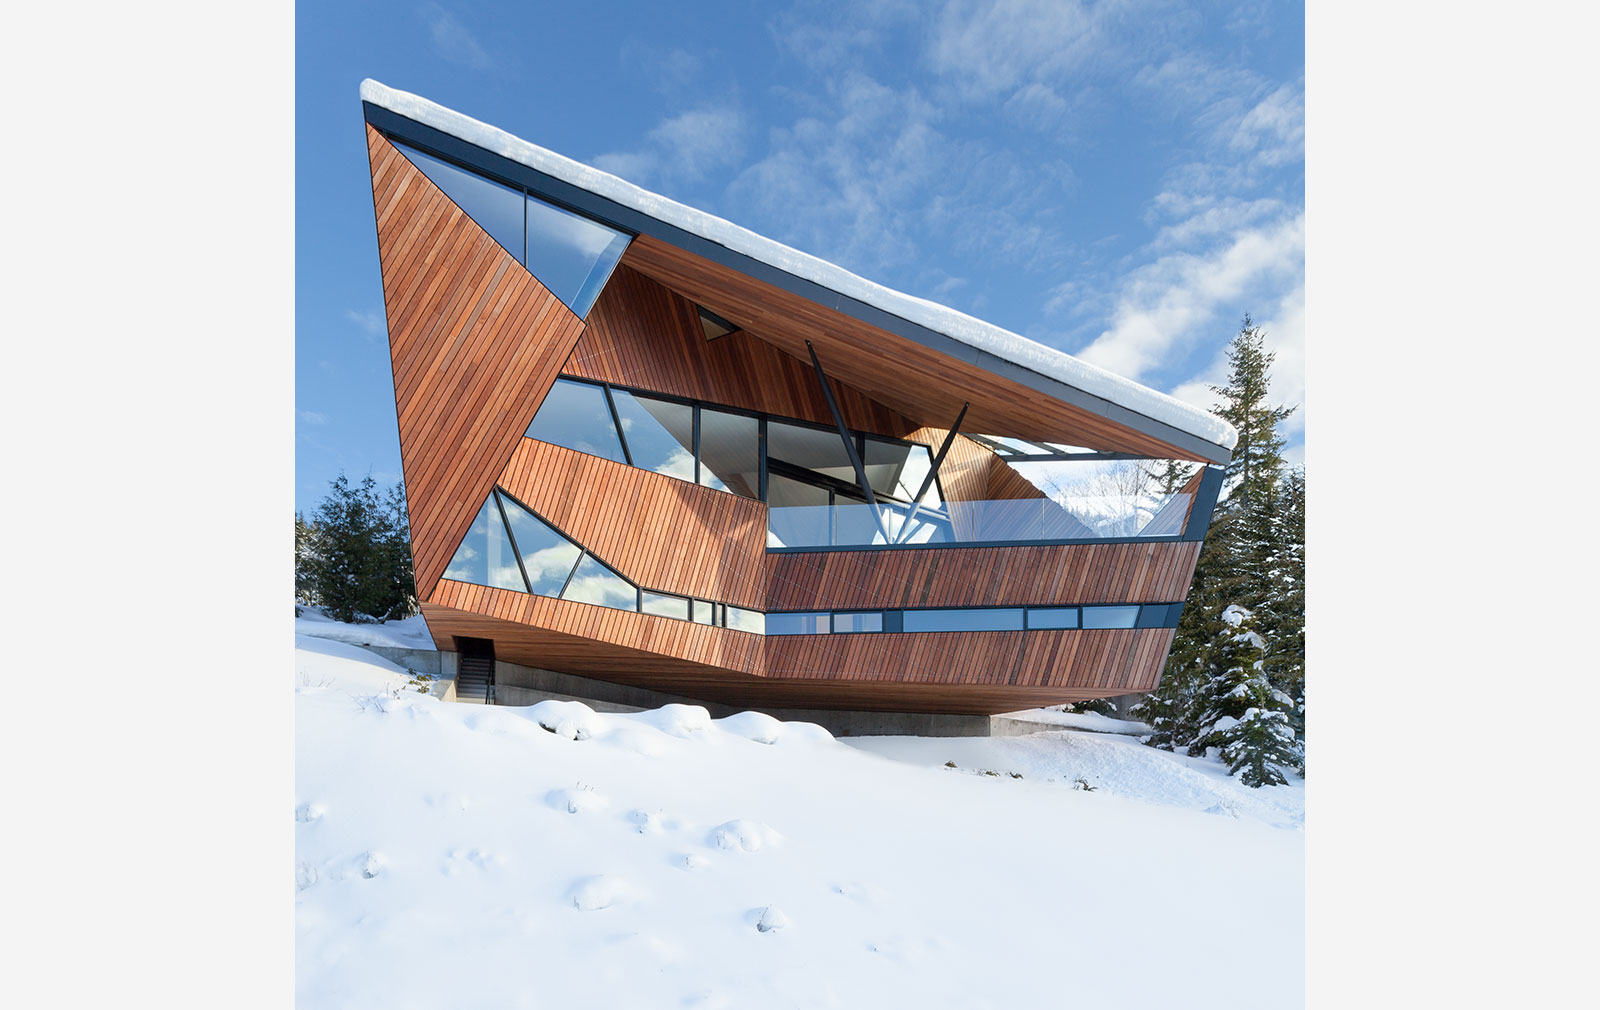 Chalet design: Hadaway House by Patkau Architects